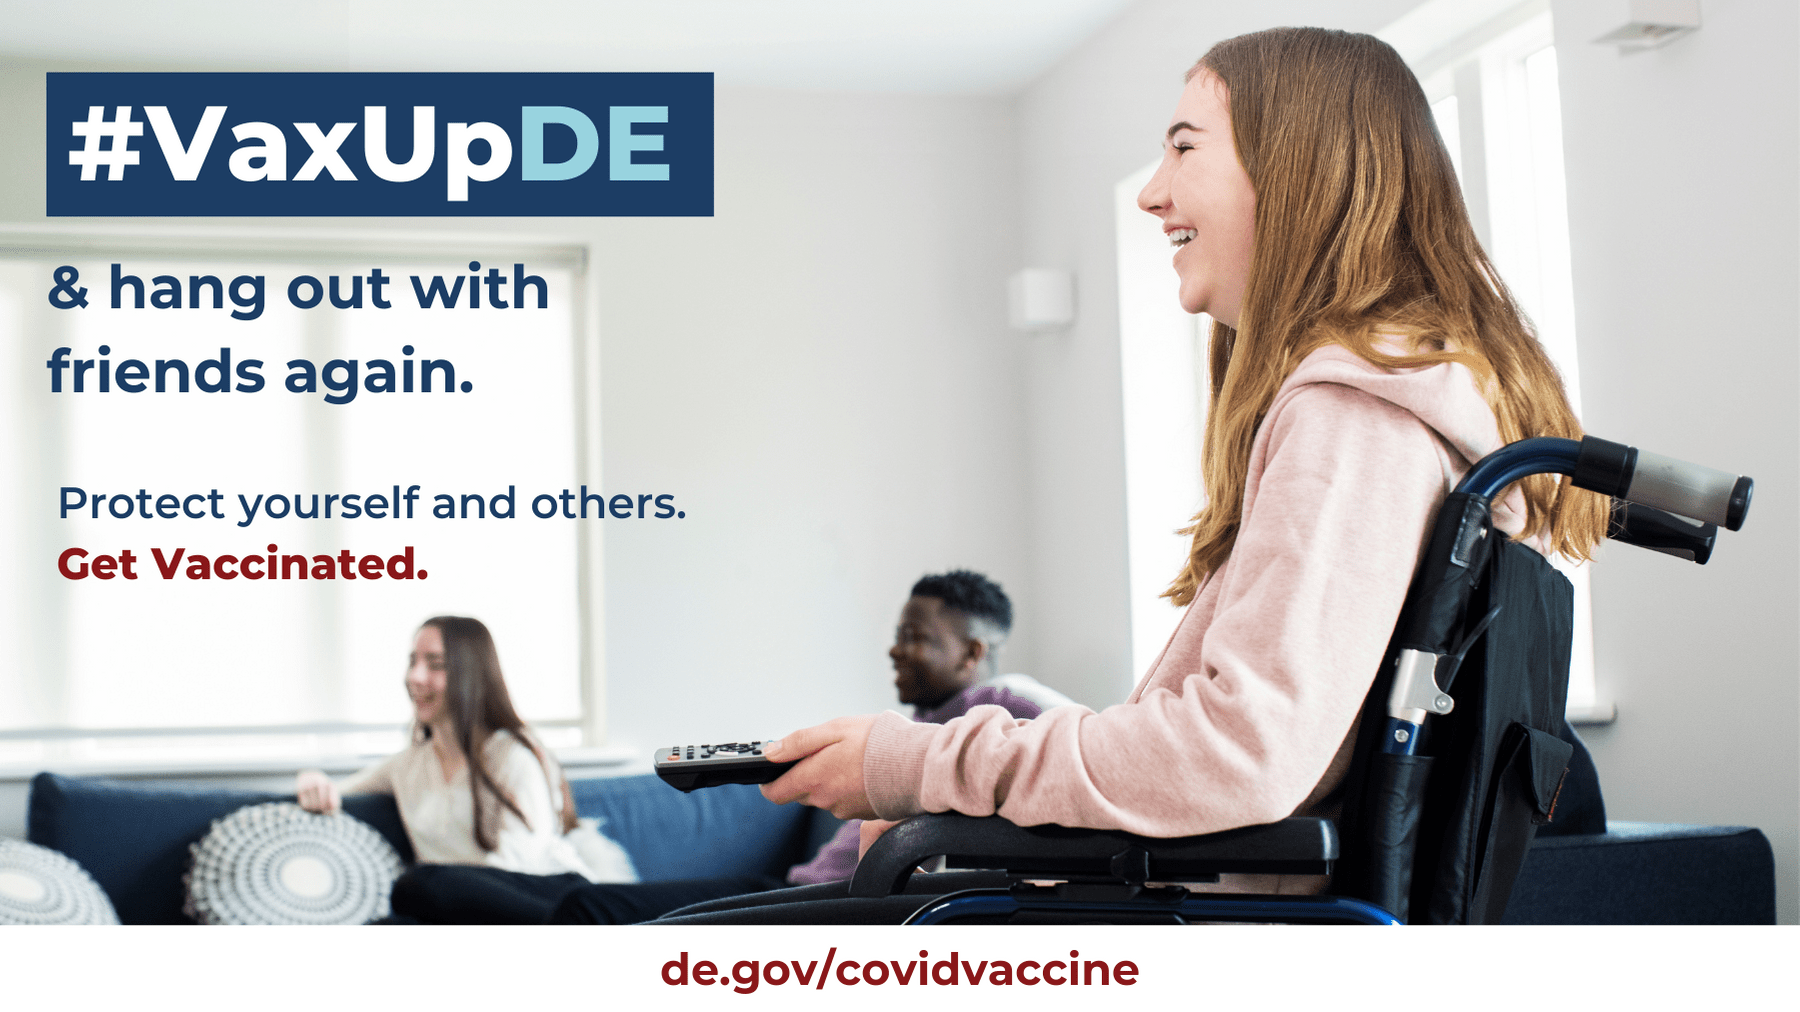 VaxUpDE. Protect yourself and others. Get Vaccinated. Teens smiling while sitting a lounge together.